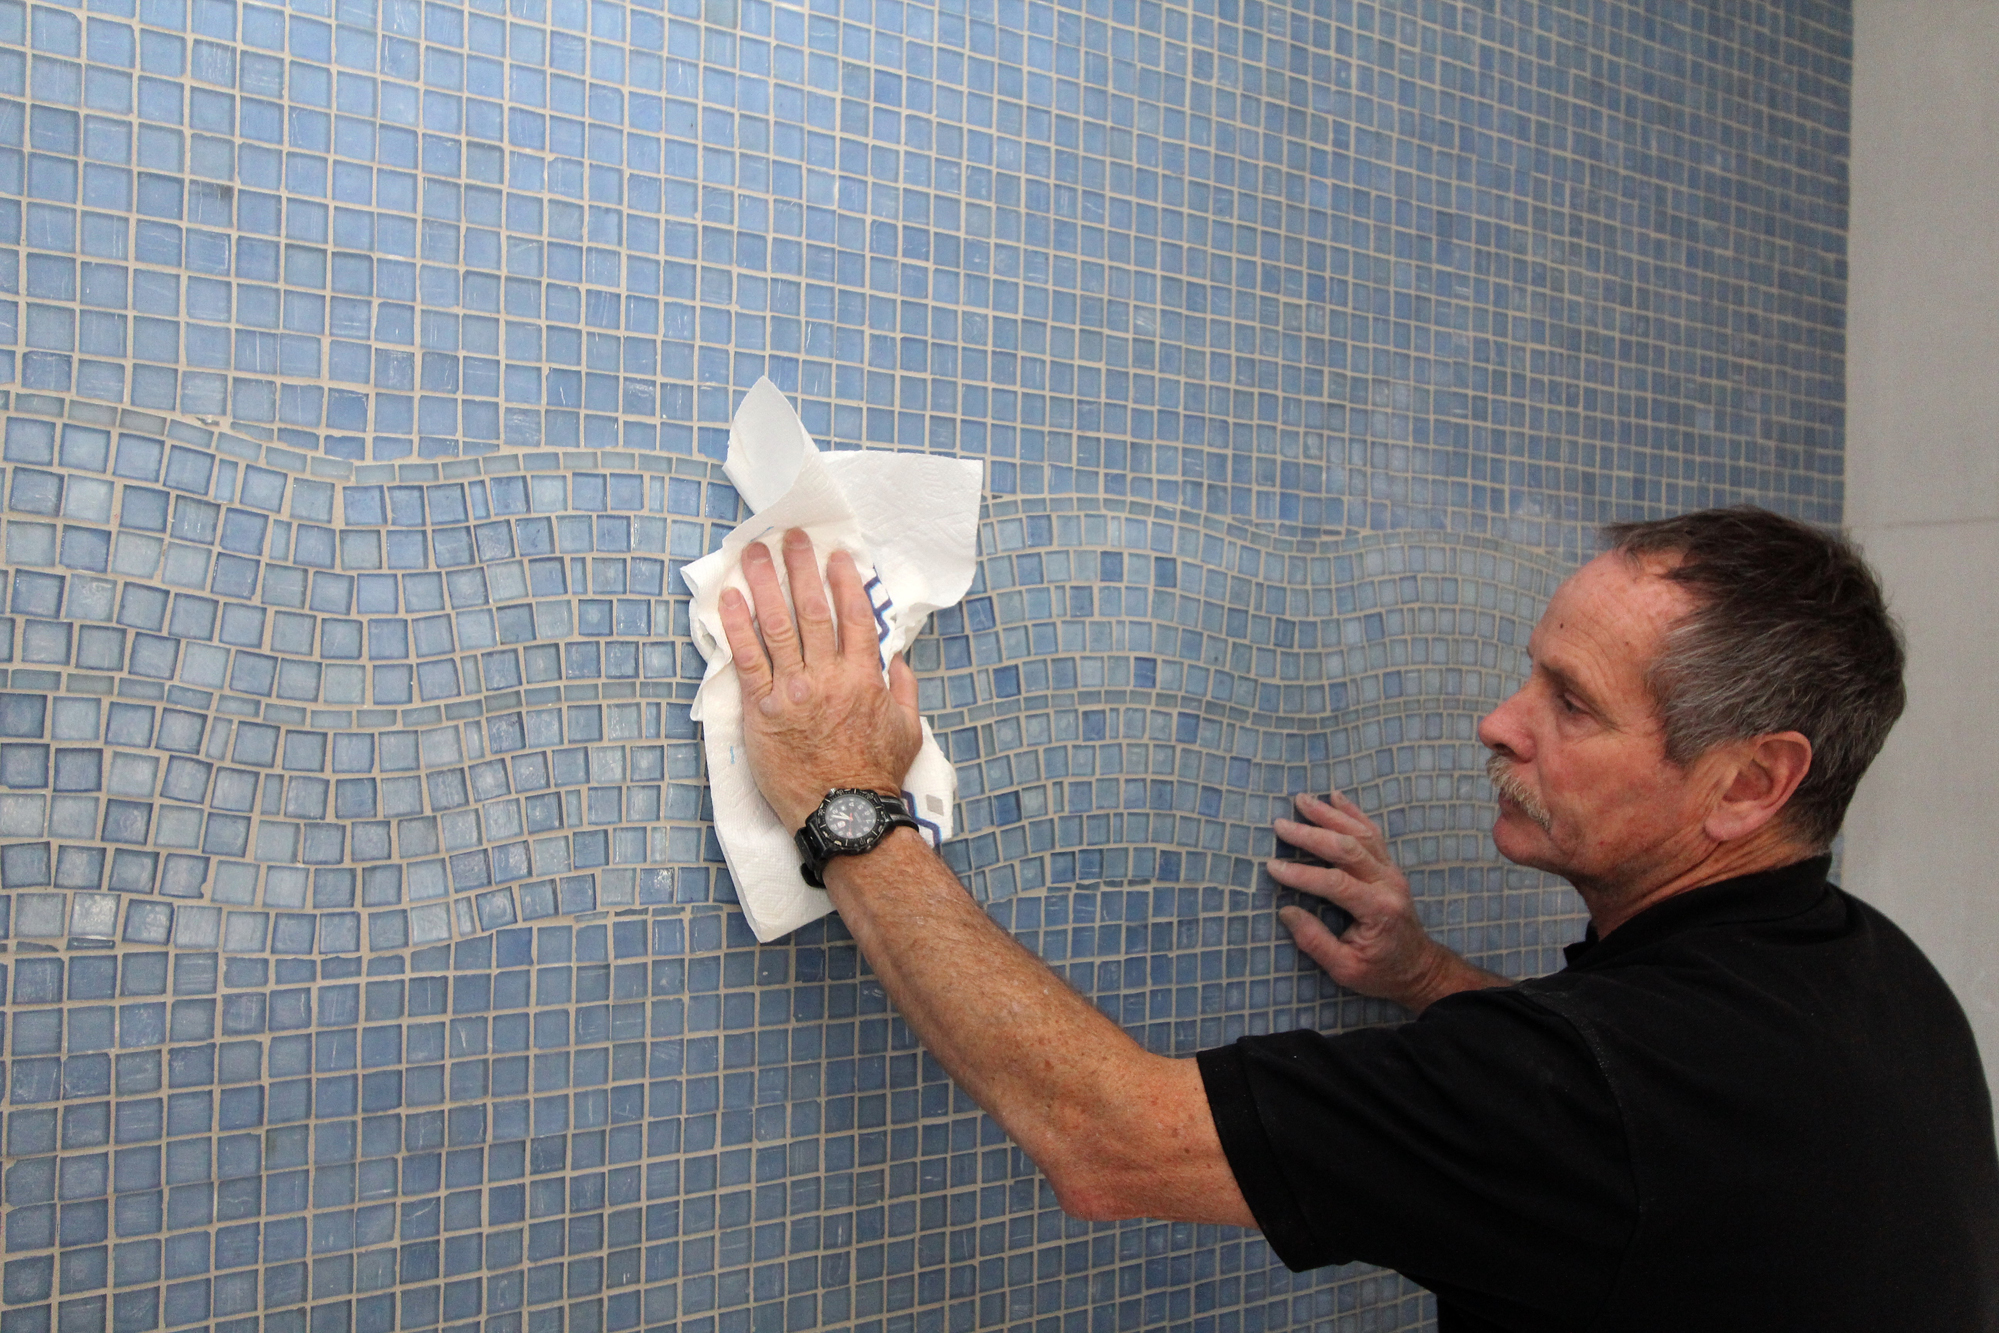 Working With Glass Tile | JLC Online | Tile, Interiors, Bath, Kitchen